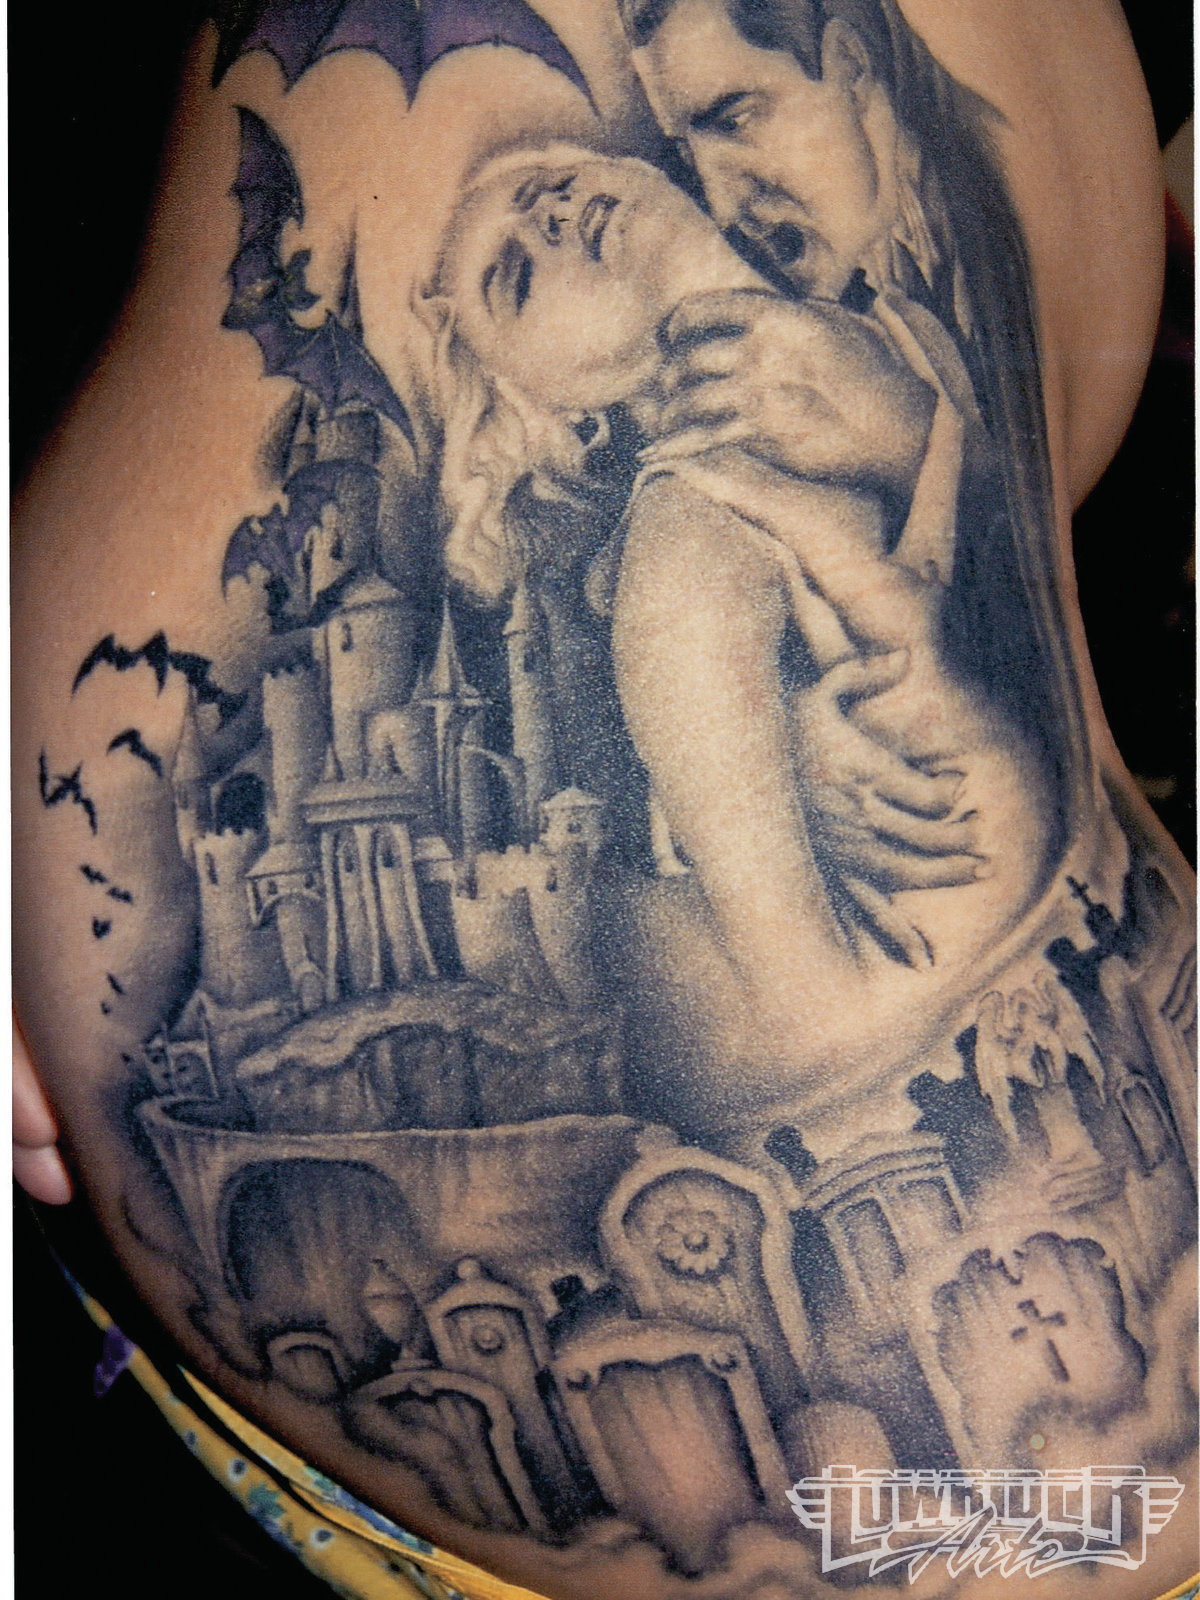 Vampire Tattoos That Will Live Forever Hungry Guff Vampire tattoos for girls, men & women. guff